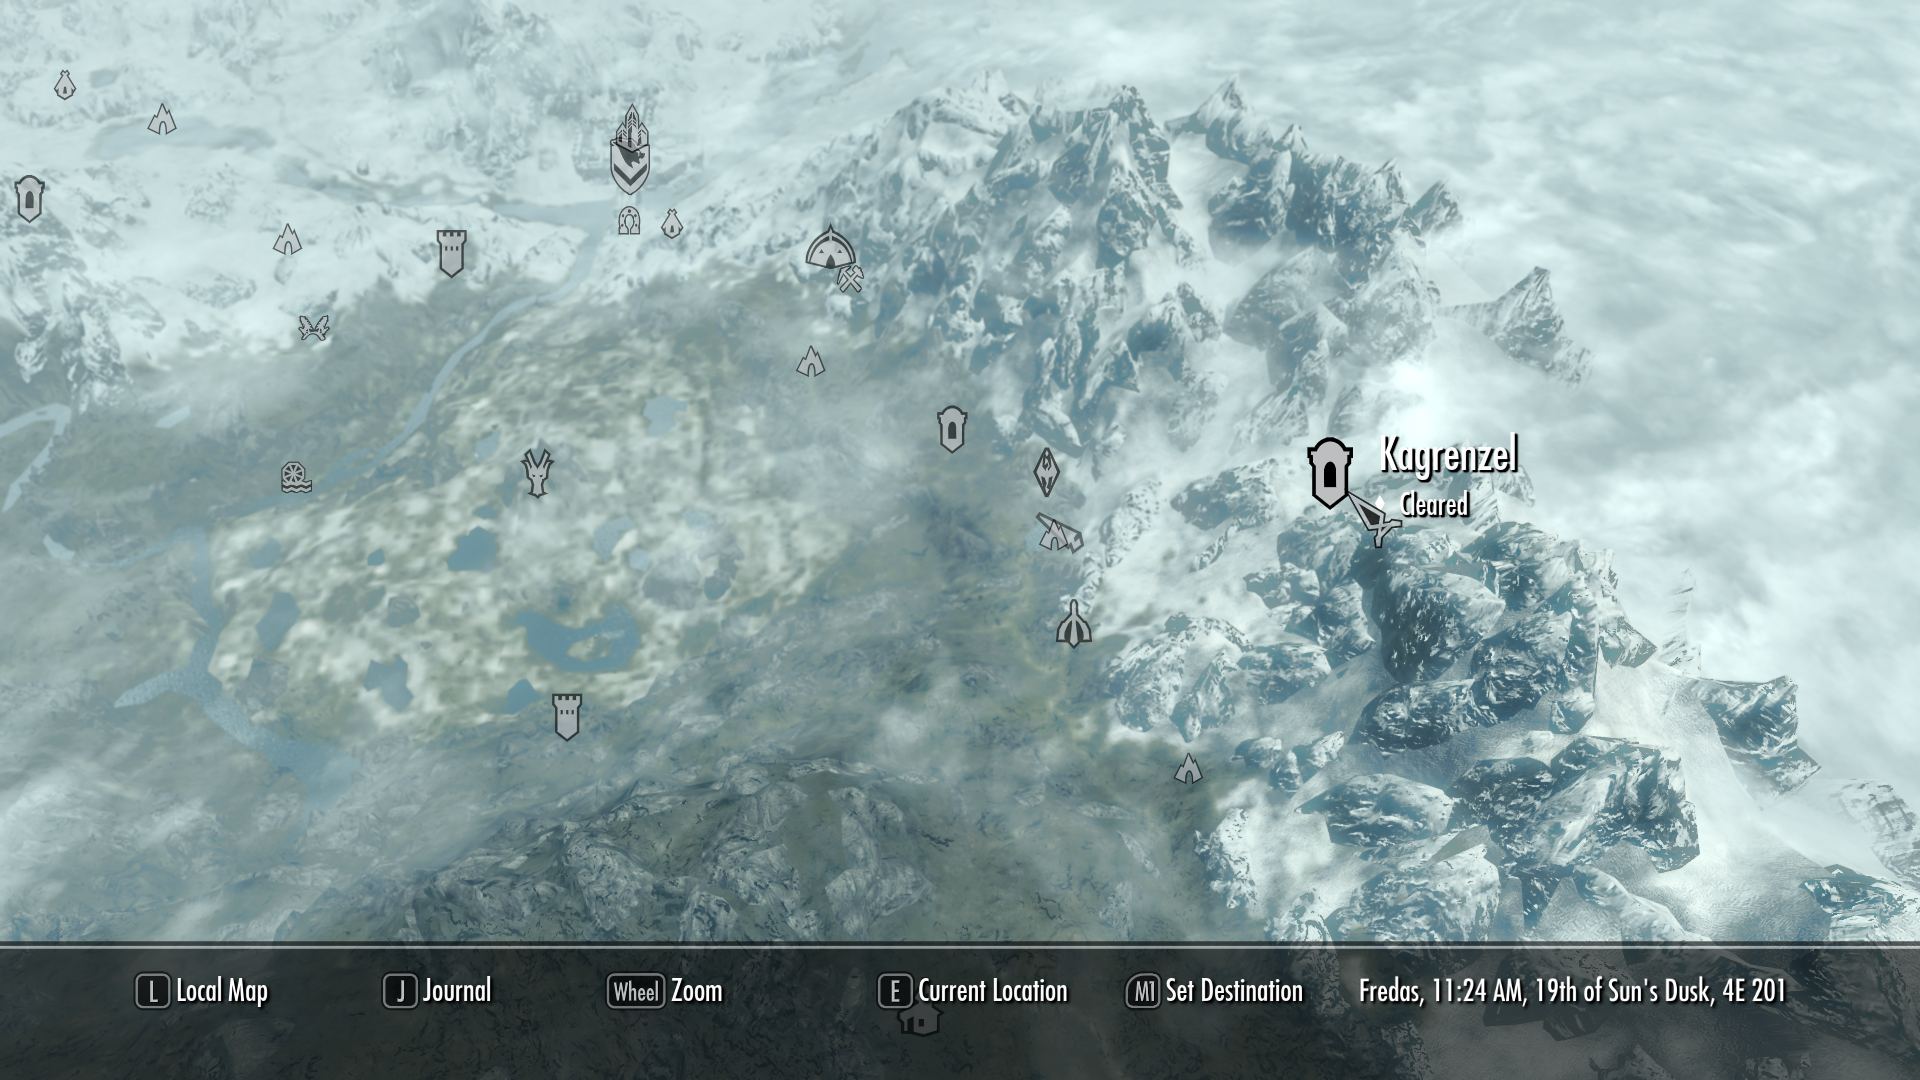 blackreach map with File Kagrenzel Location on Future Theme Parks further Marked every dragon priest and word wall location also Altered Skyrim Collector S Map 577895119 also Lost In The Nordic Wonderland Of Skyrim additionally 4646.